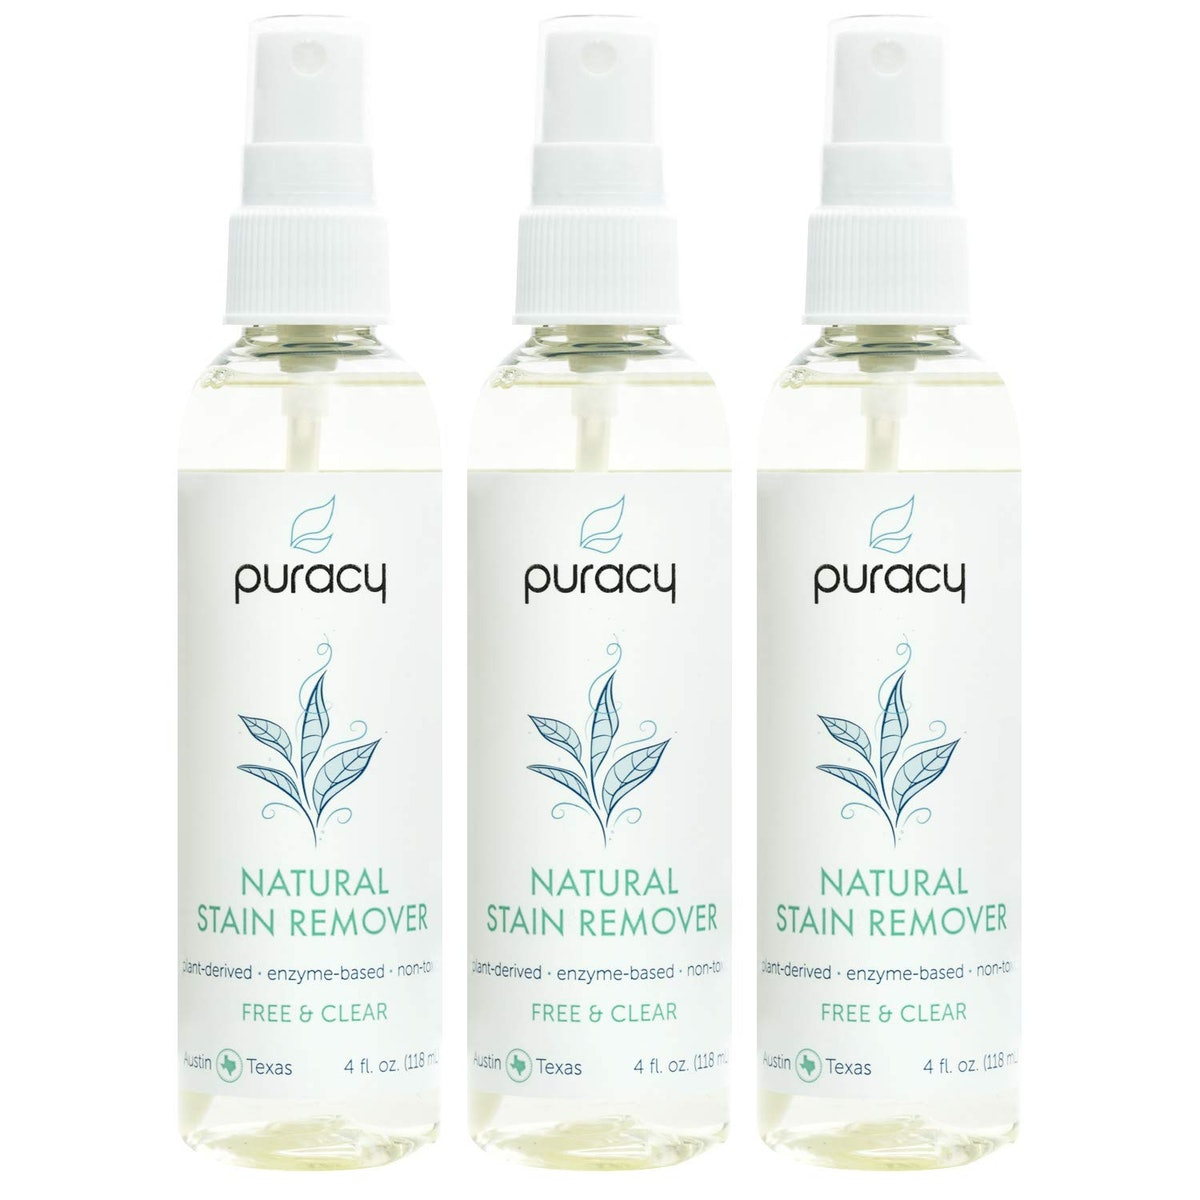 Puracy Laundry Stain Remover (3 Pack)